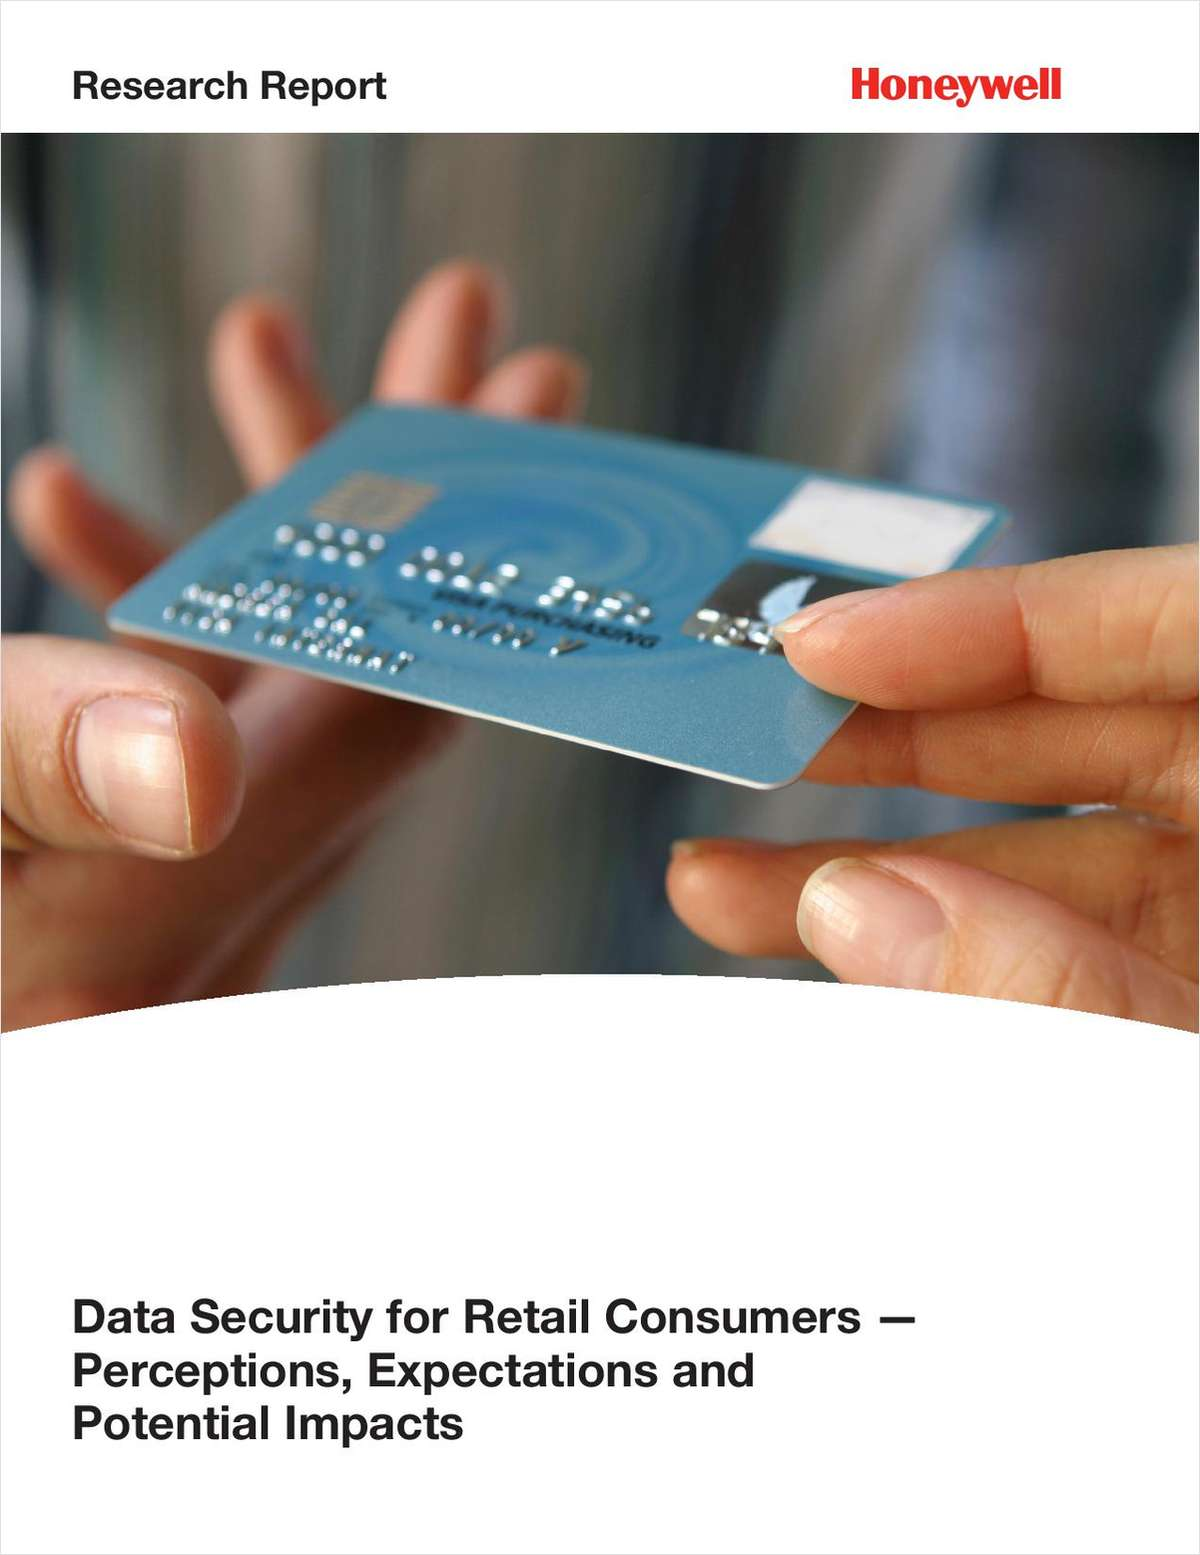 Data Security for Retail Customers – Perceptions, Expectations and Potential Impacts